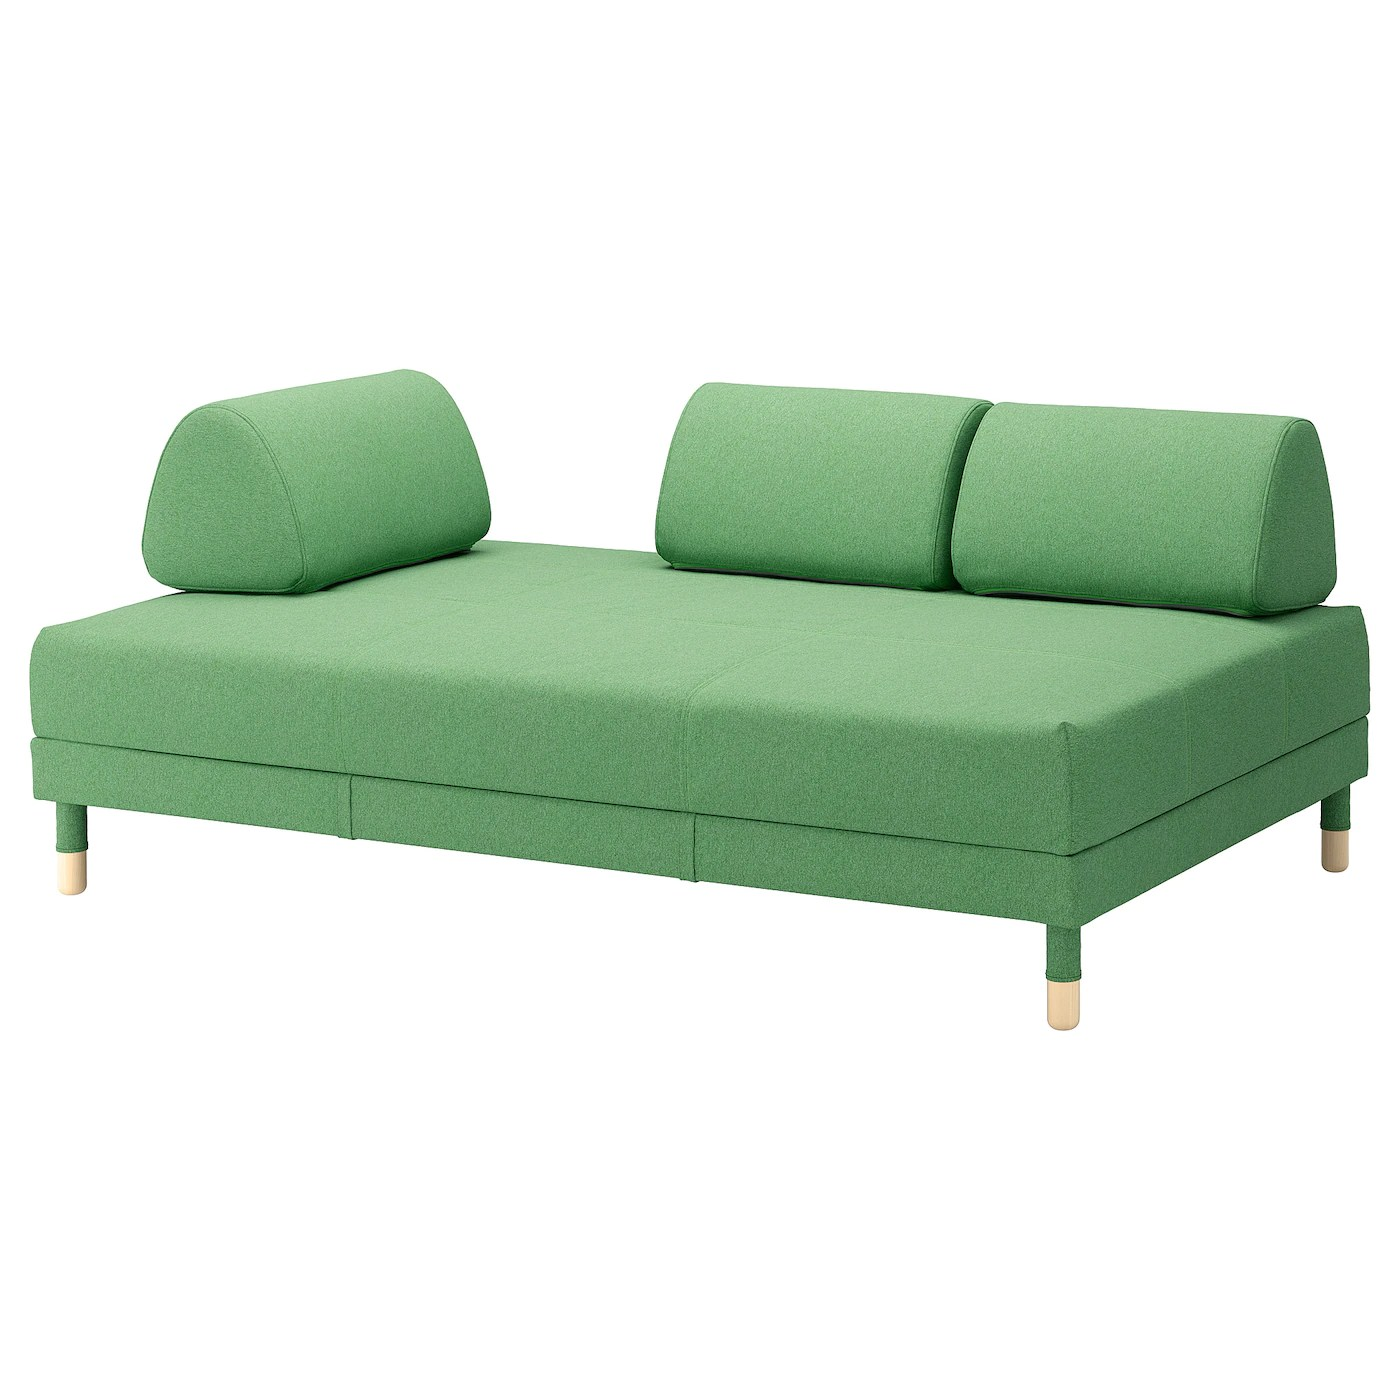 Bed Chair Flottebo Sofa Bed Lysed Green 120 Cm Ikea